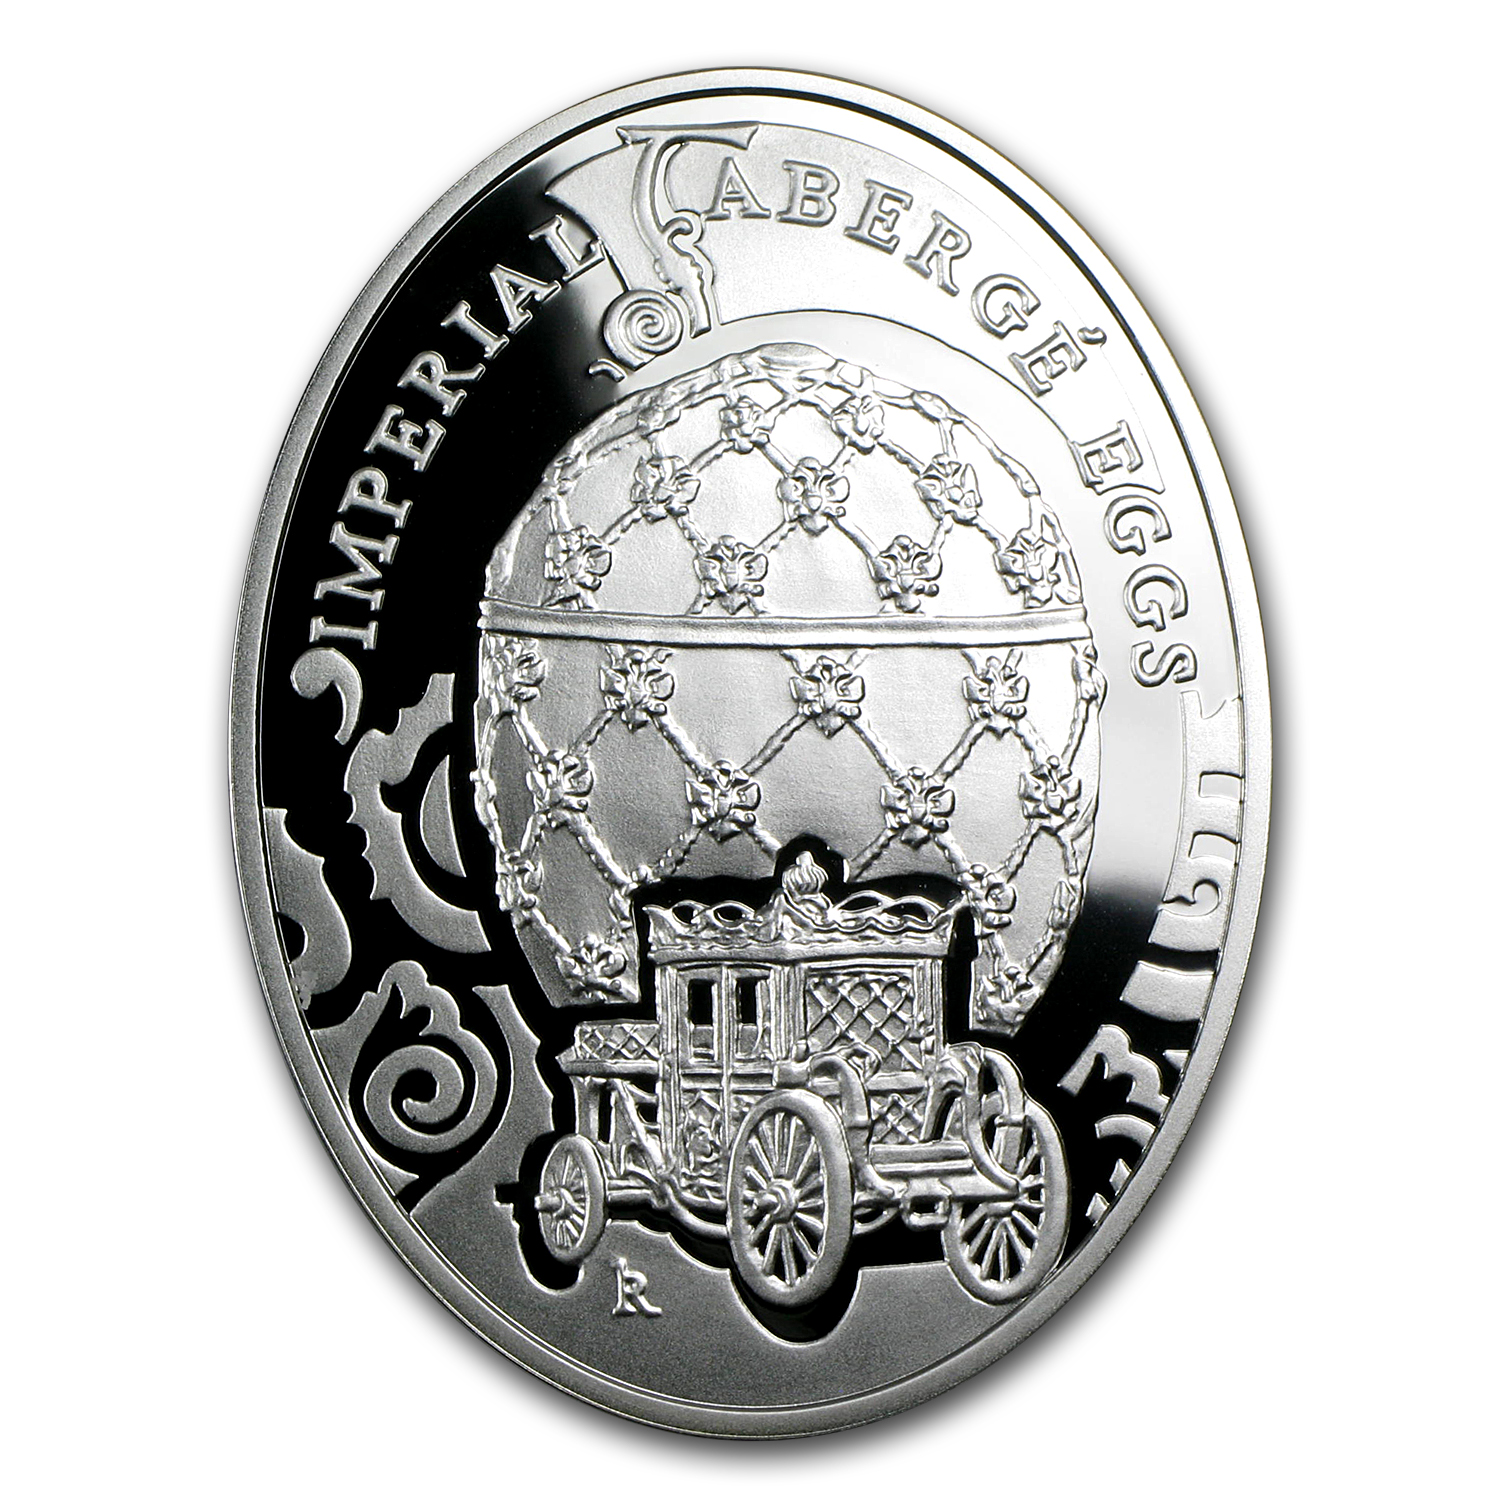 2010 Niue Proof Silver $2 Imperial Fabergé Eggs Coronation Egg